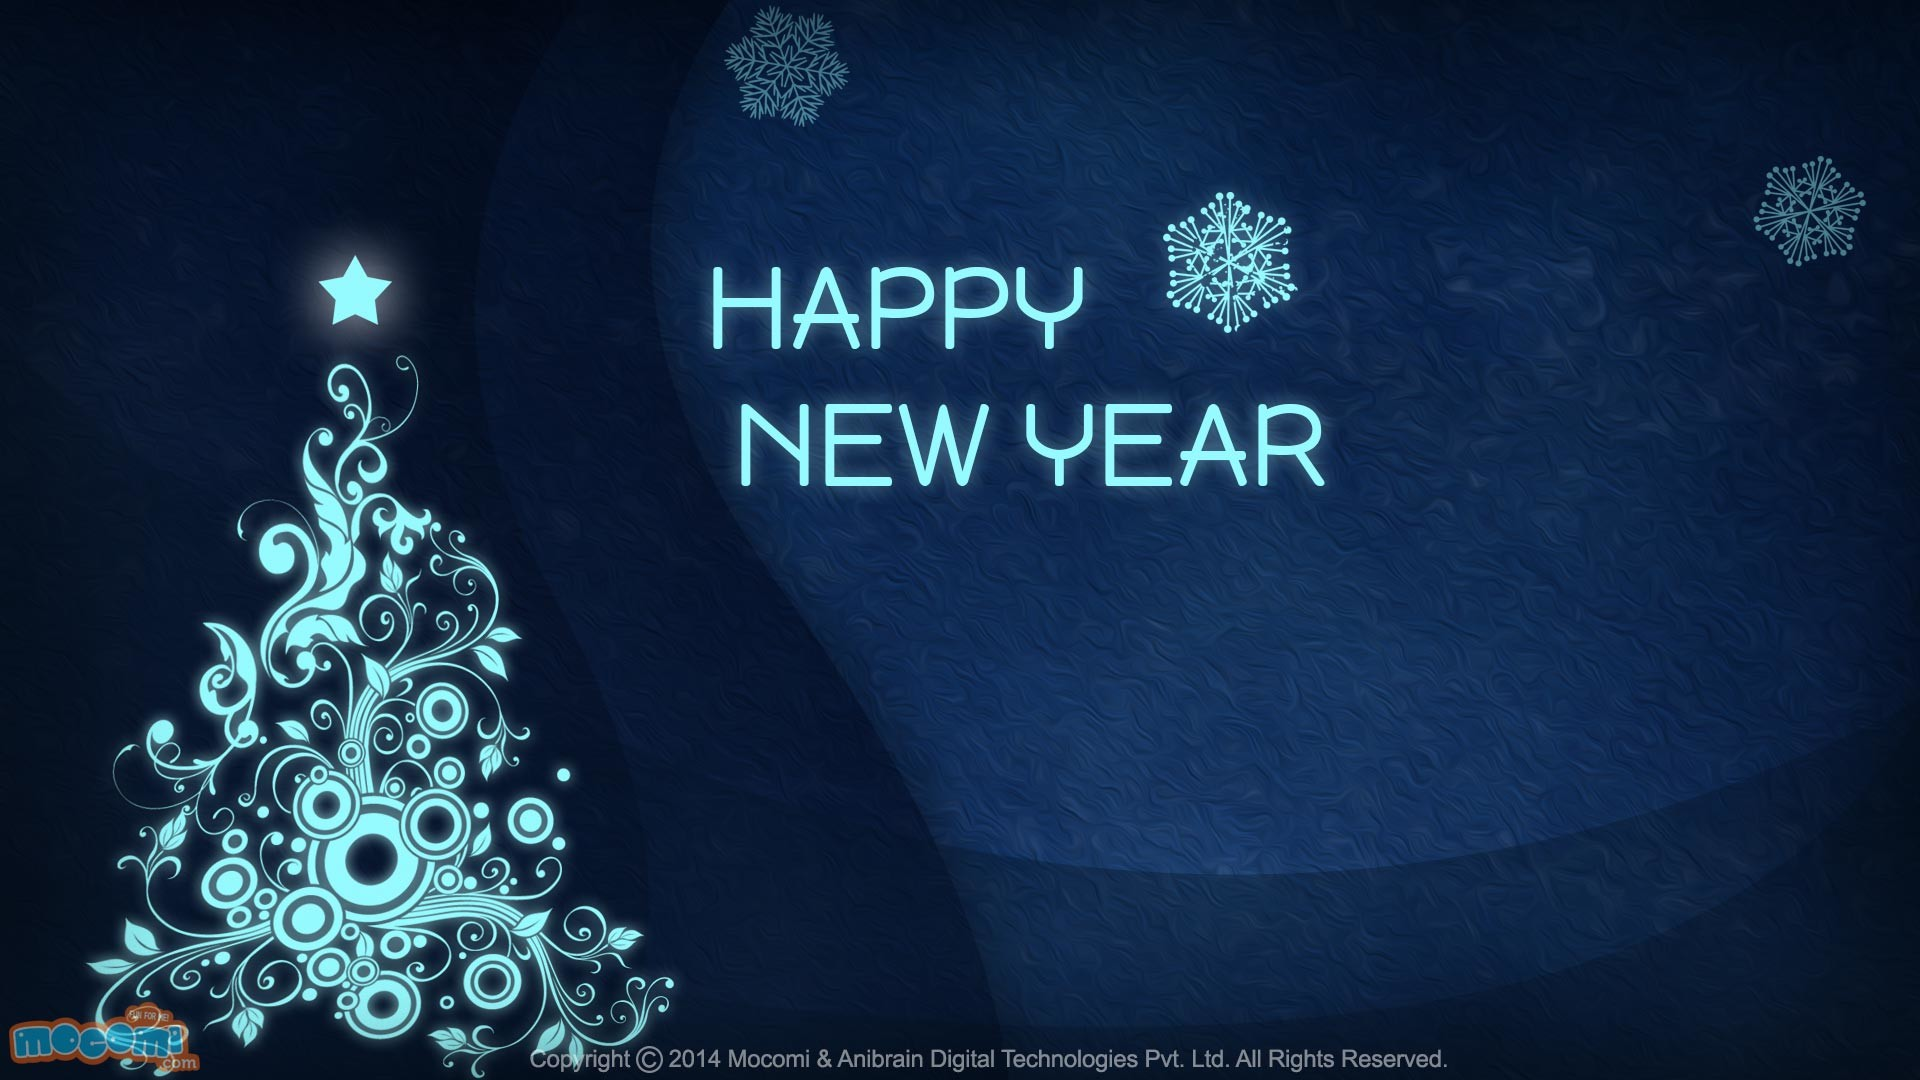 happy new year hd desktop widescreen high definition